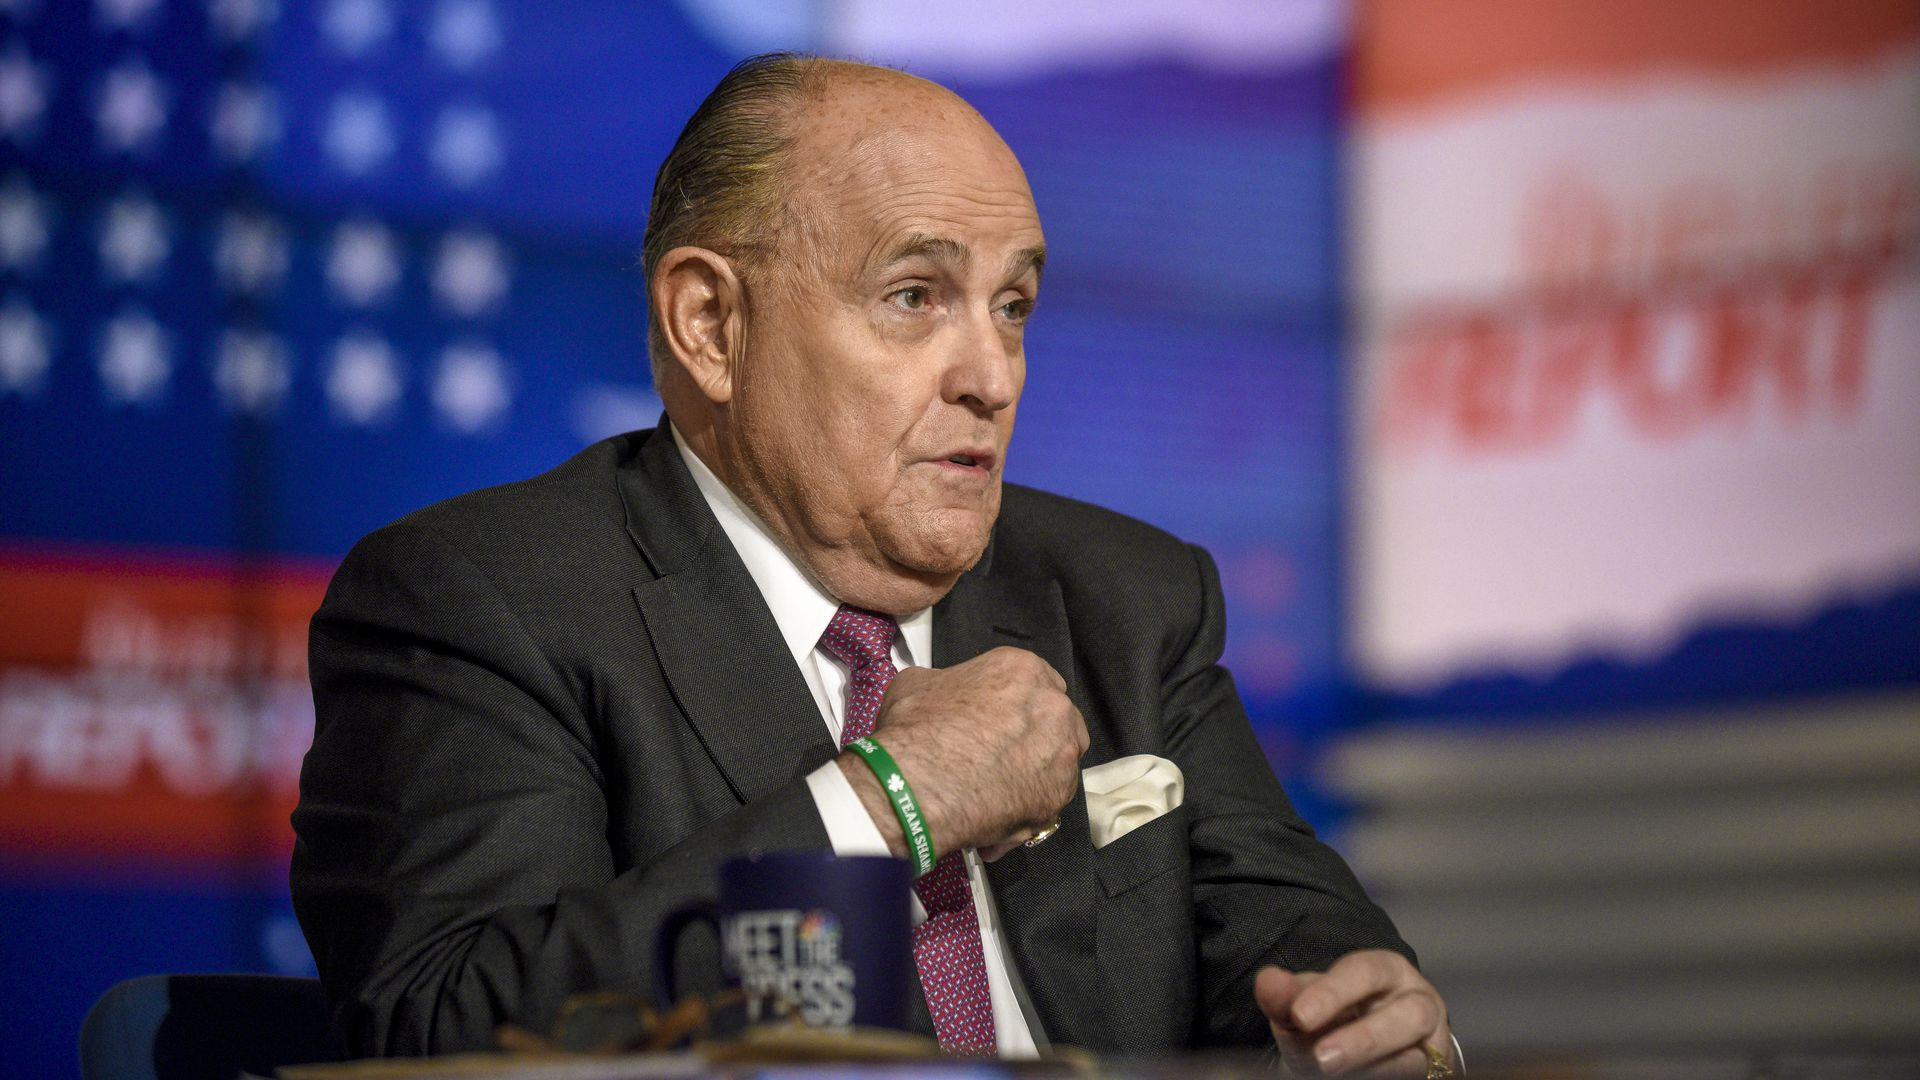 In this image, Rudy sits in a suit and tie and gestures to himself while sitting at a desk with the American flag in front of him.